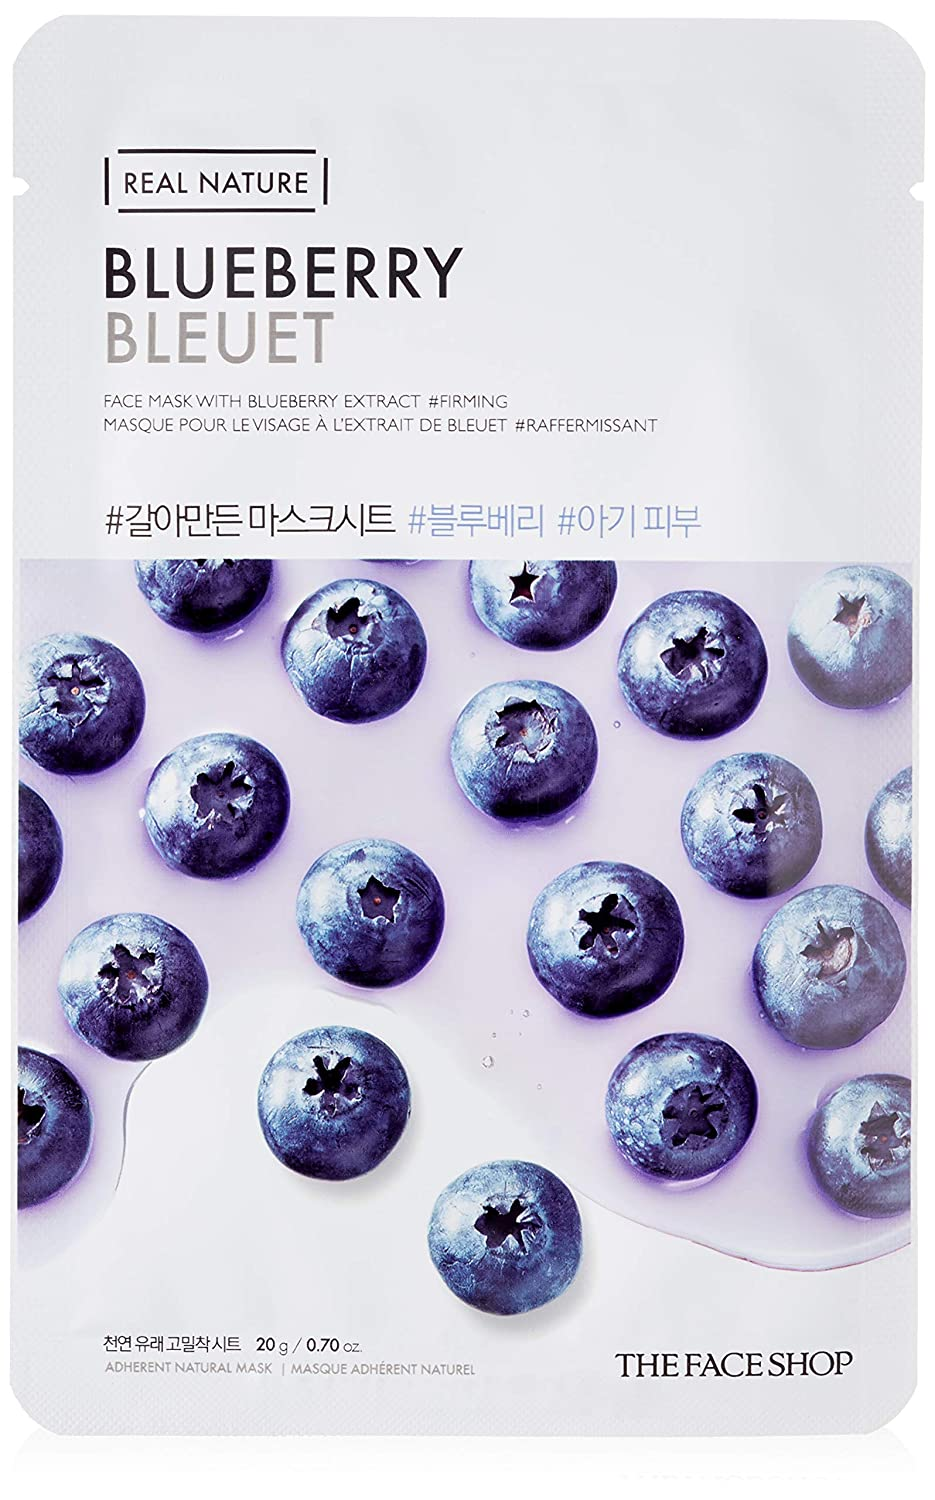 THE FACE SHOP Real Nature Mask Sheet Blueberry